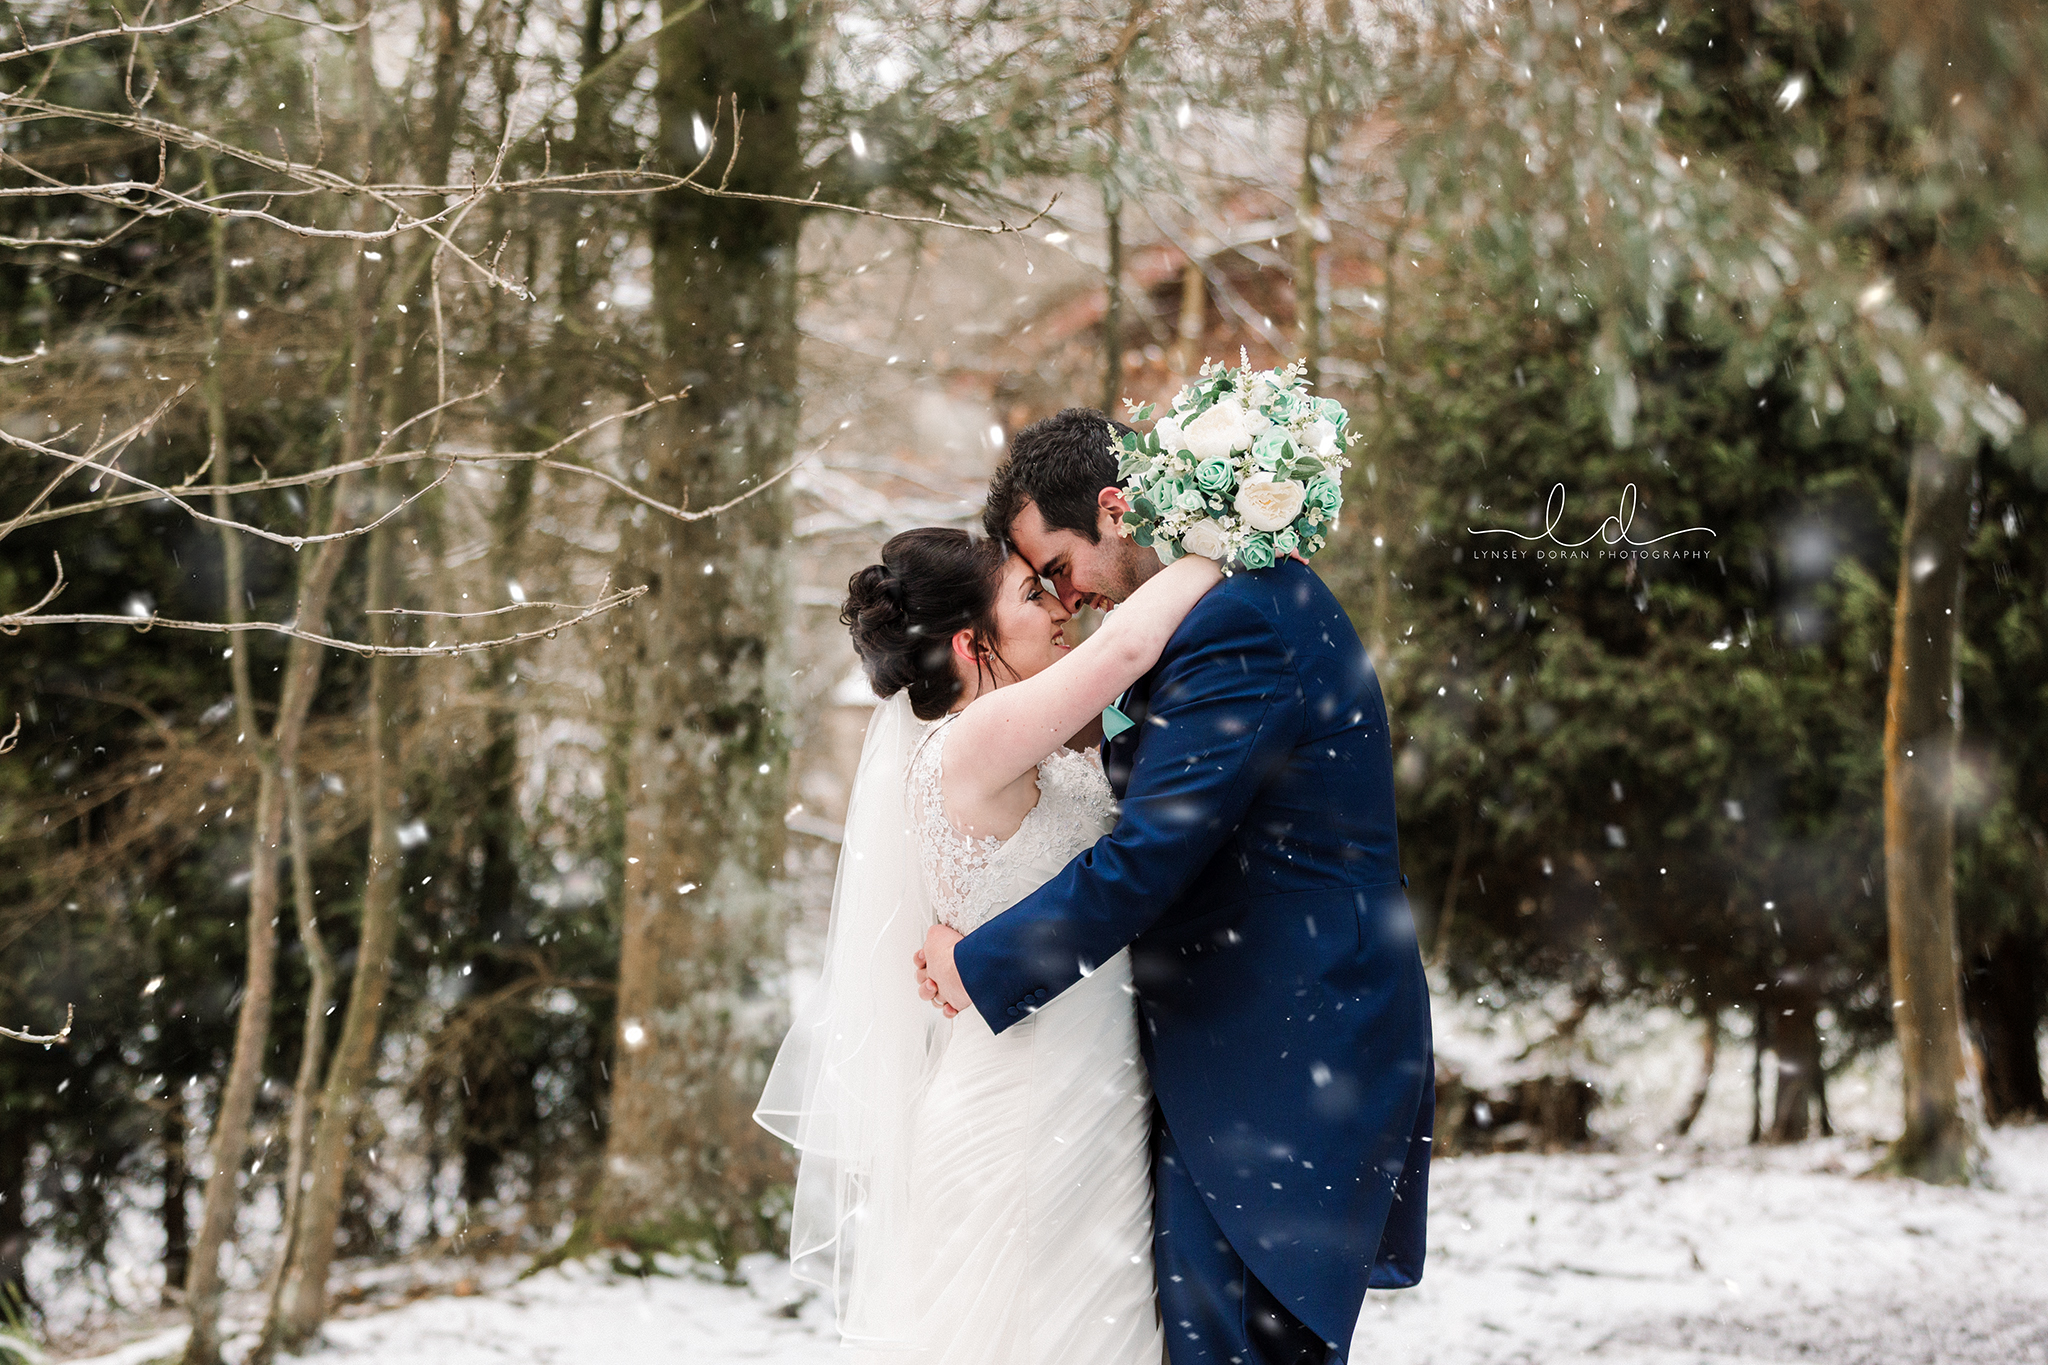 Snowy yorkshire winter wedding photographer